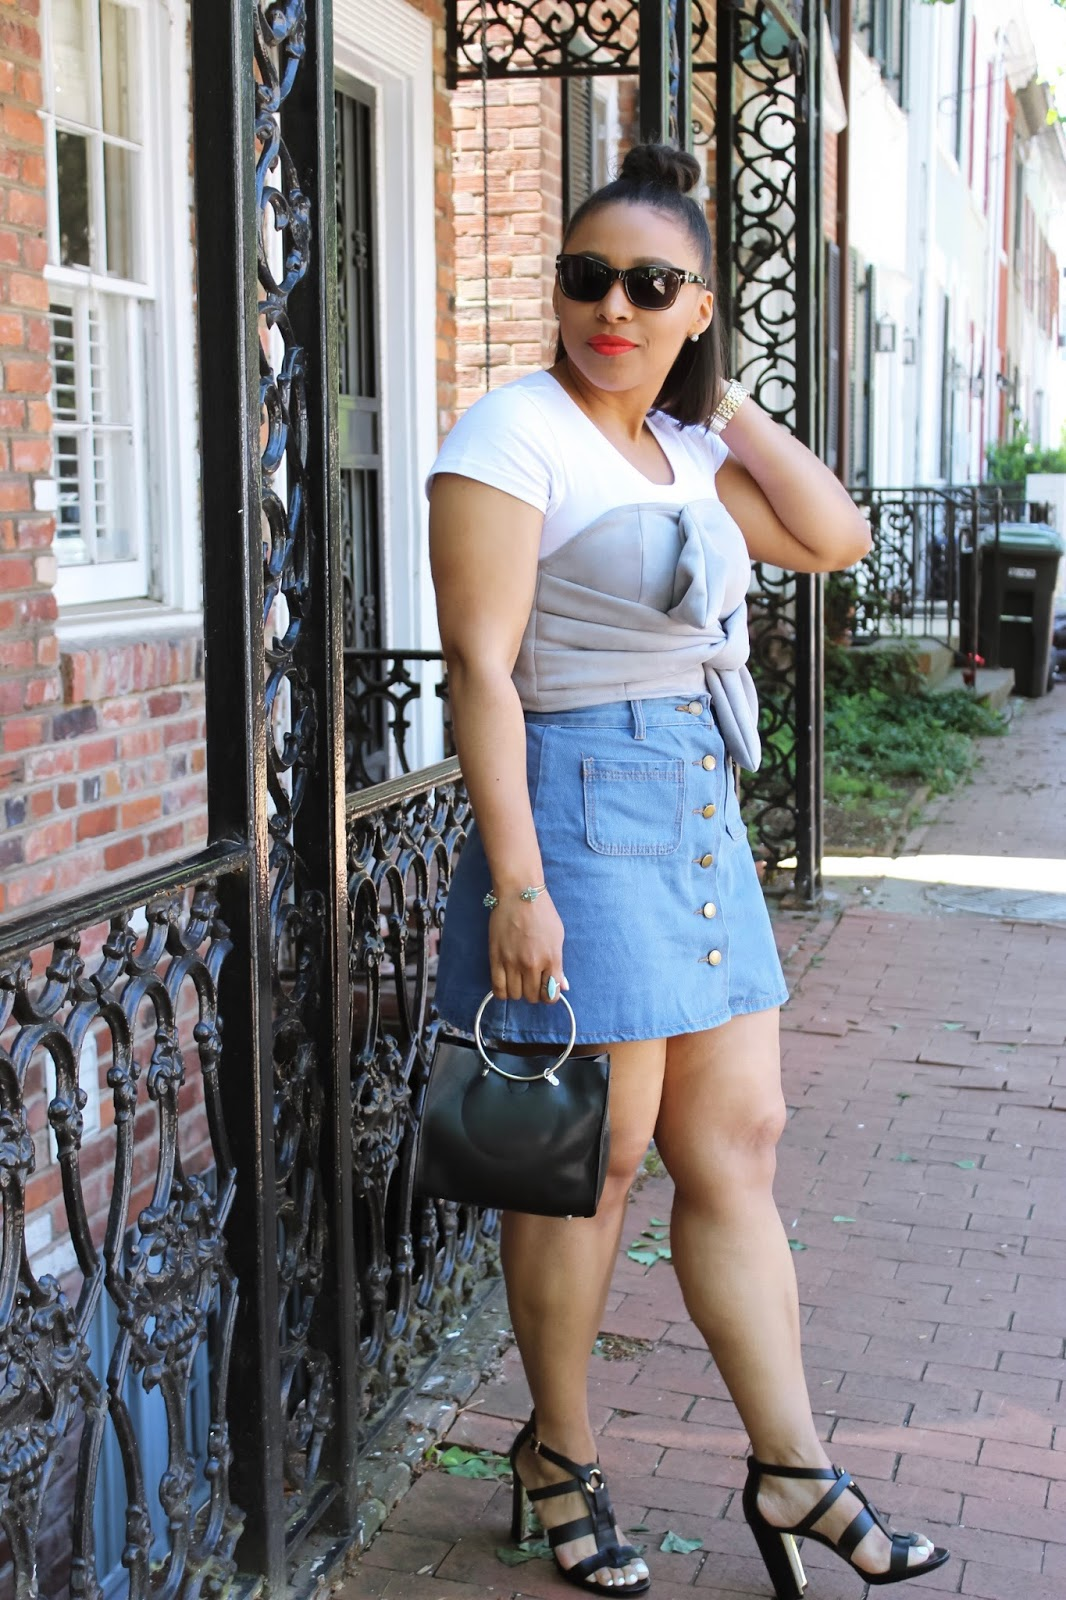 A Bow Crop Top | Summer Outfit Idea, flower eye wear, summer outfits, denim skirt, bow crop top, button down denim skirt, top bun hair ideas